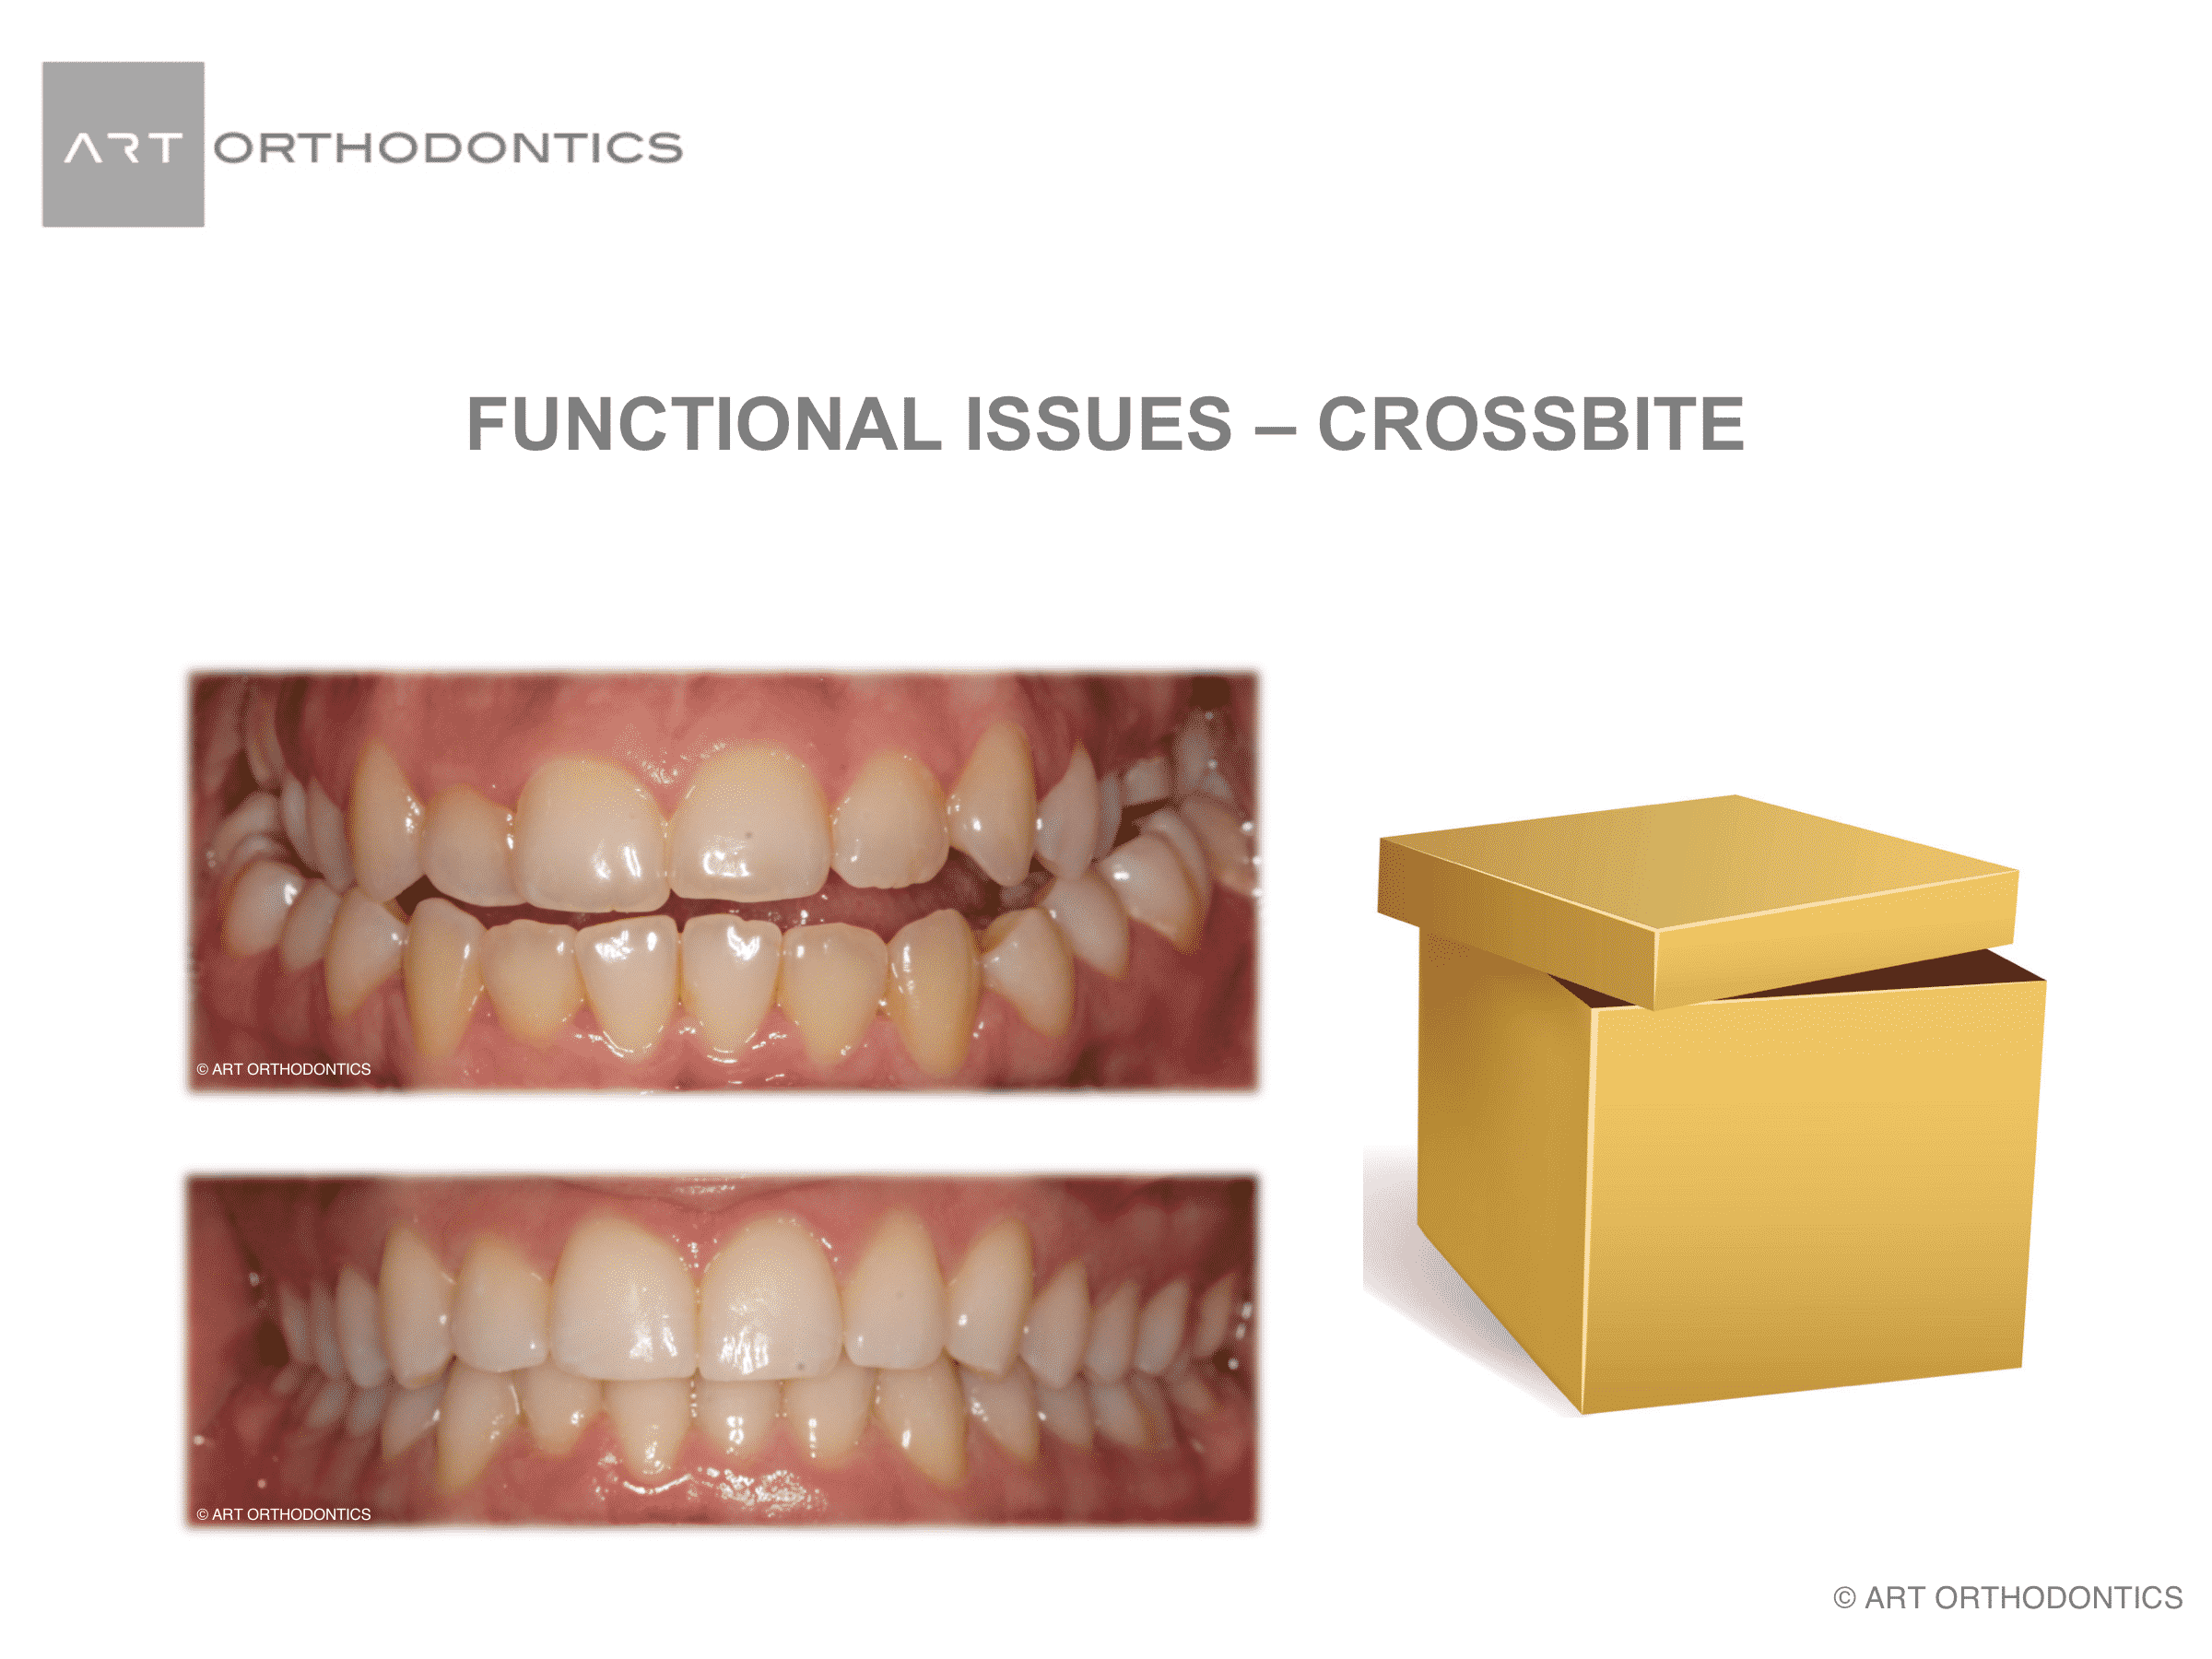 Images of a dental cross bite and a simulation with a box